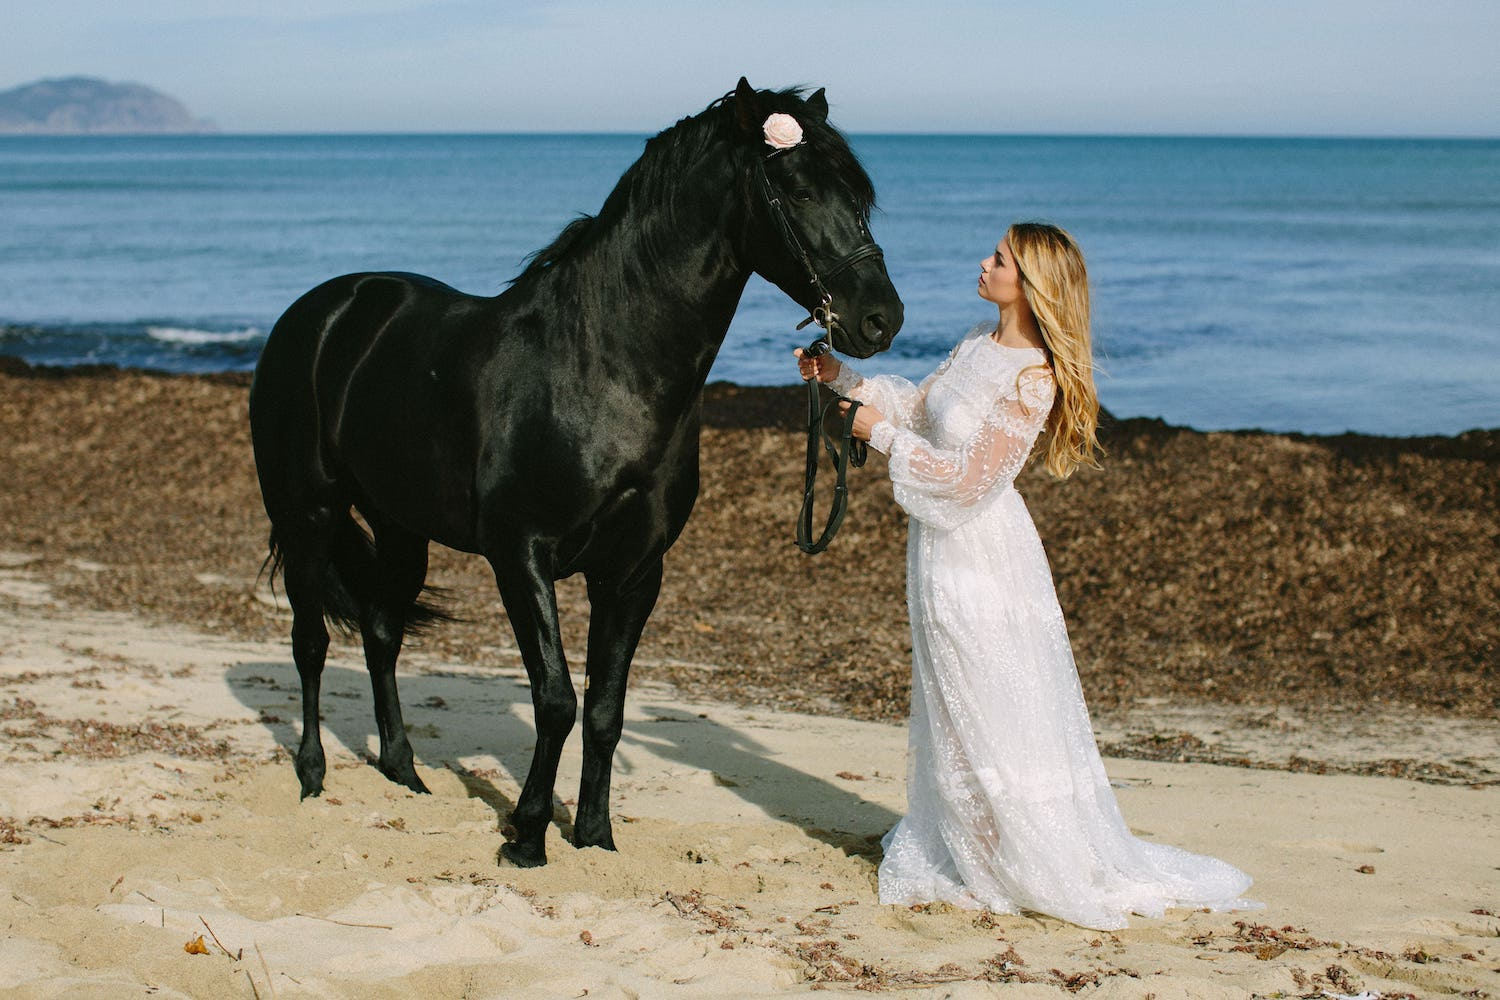 wedding dress ideas from wedding planner in can picafort Mallorca